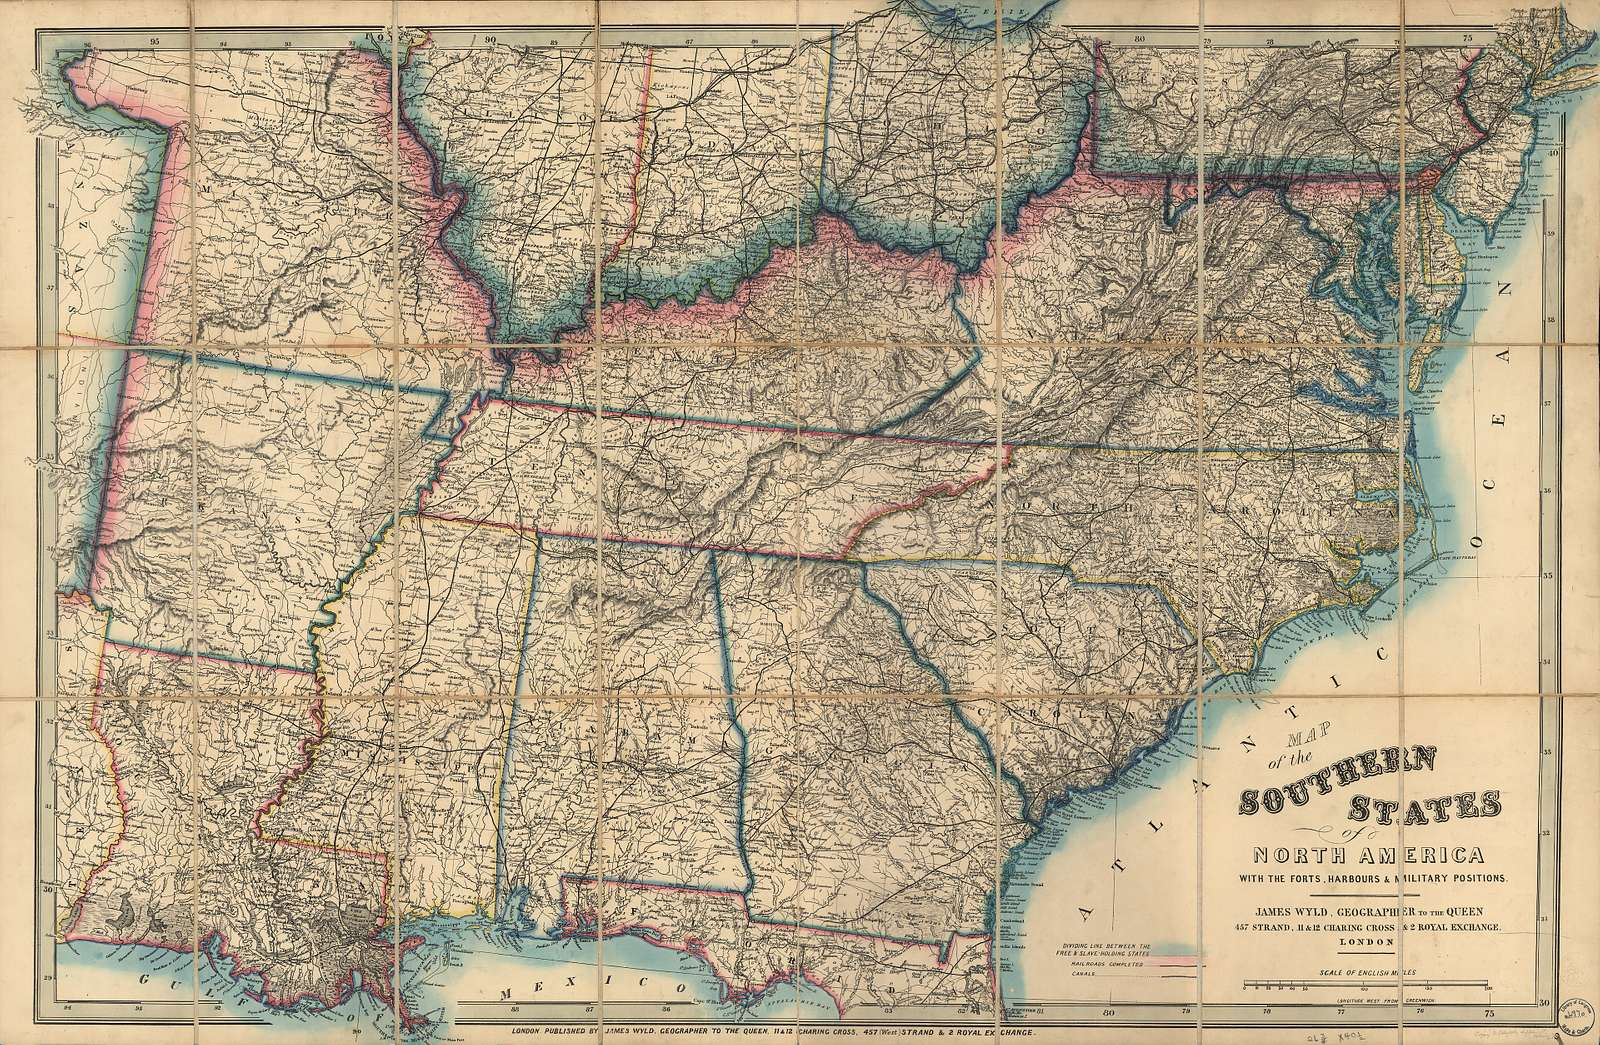 Map of the southern states of North America with the forts, harbours & military positions